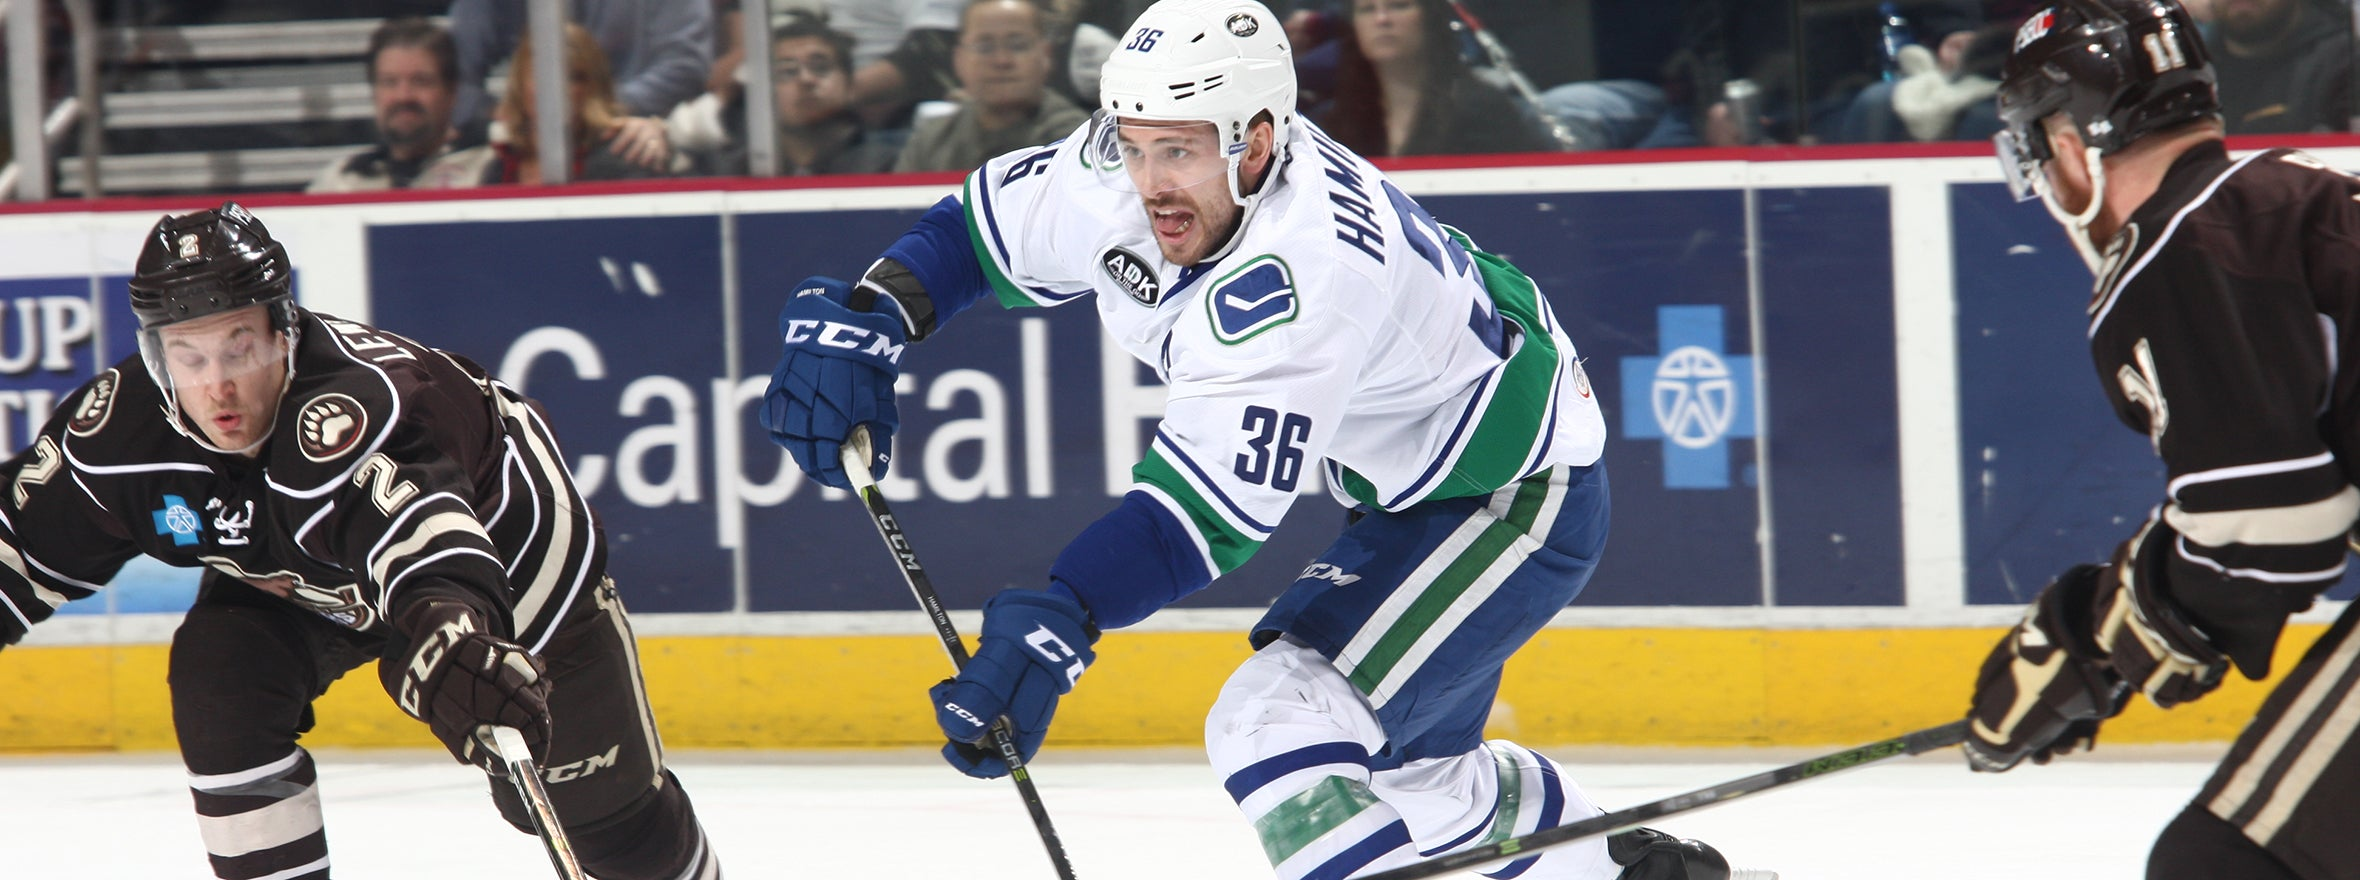 COMETS SHUTOUT FOR SECOND STRAIGHT NIGHT